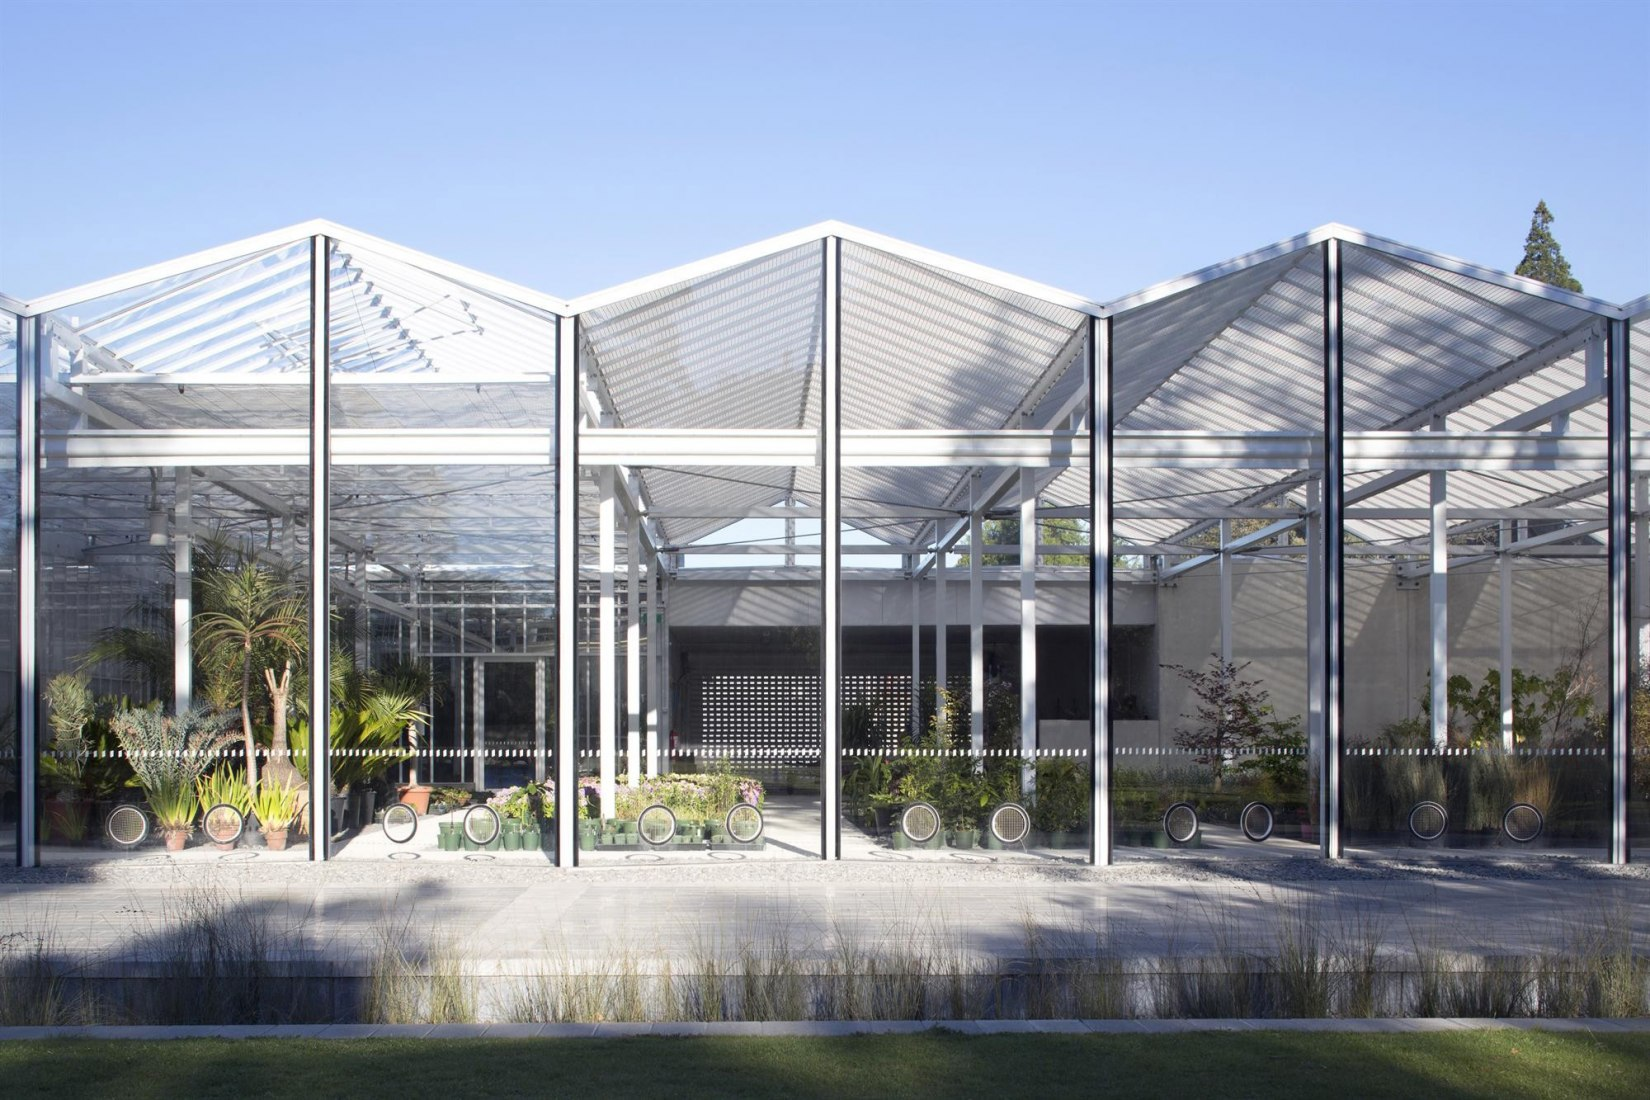 Christchurch Botanic Gardens Visitor's Centre by architects Patterson Associates. Photograph © Simon Devitt, Jeremy Toth